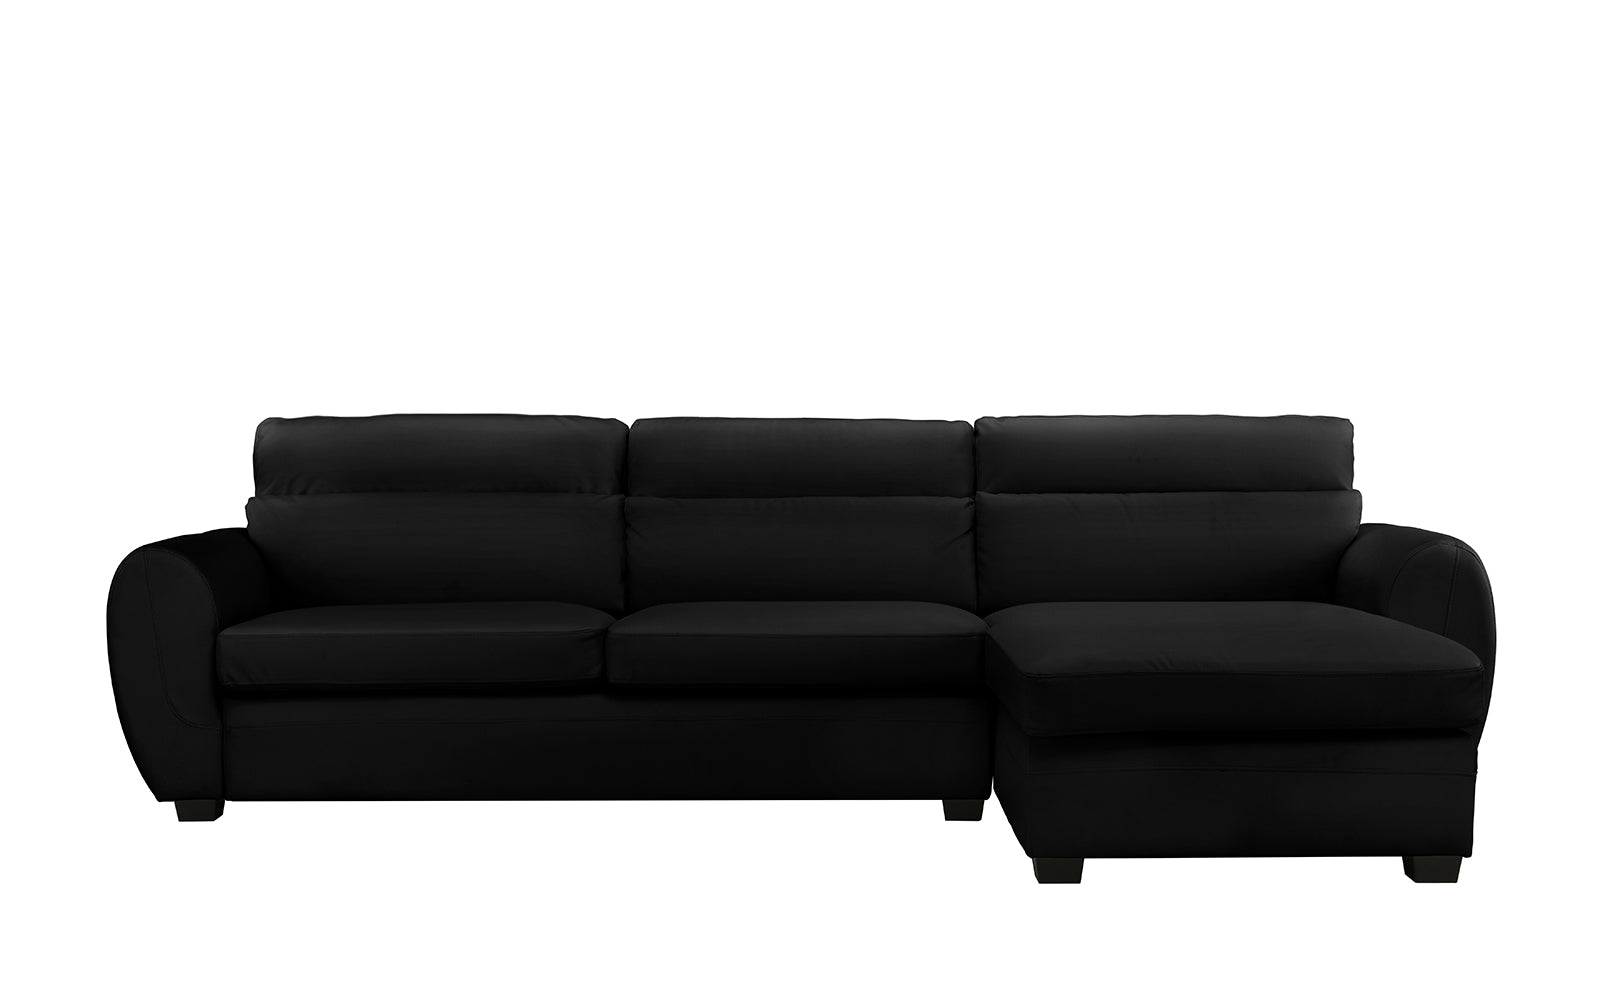 Leather Sectional Sofa Chaise Image